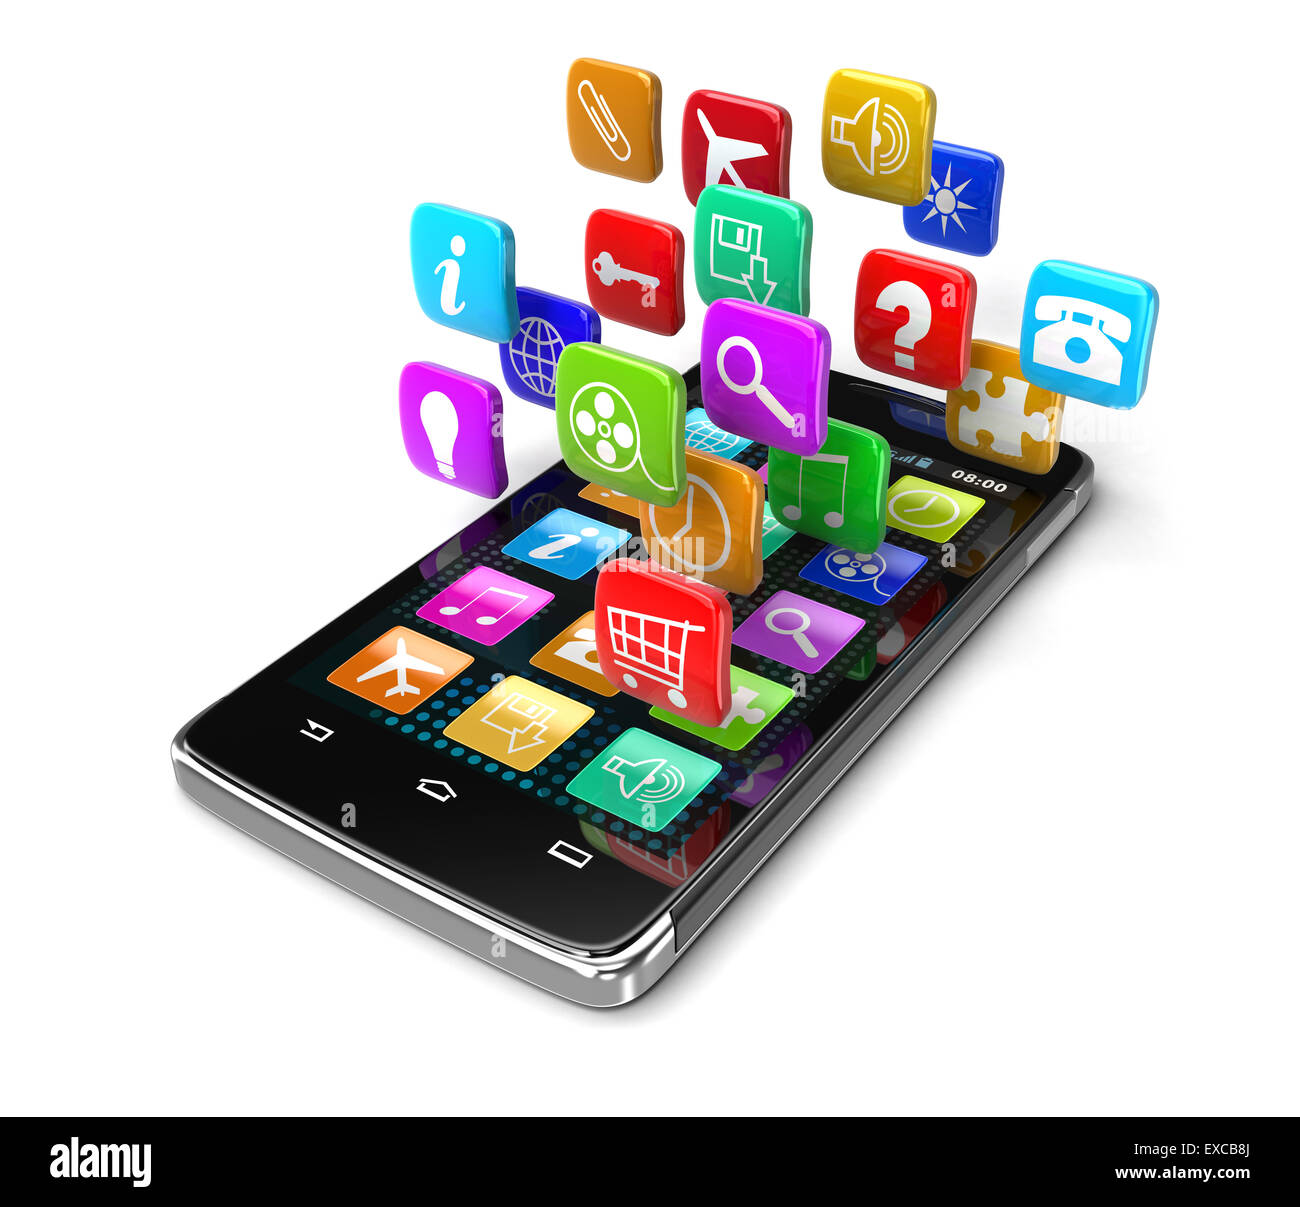 Touchscreen smartphone (clipping path included) - Stock Image